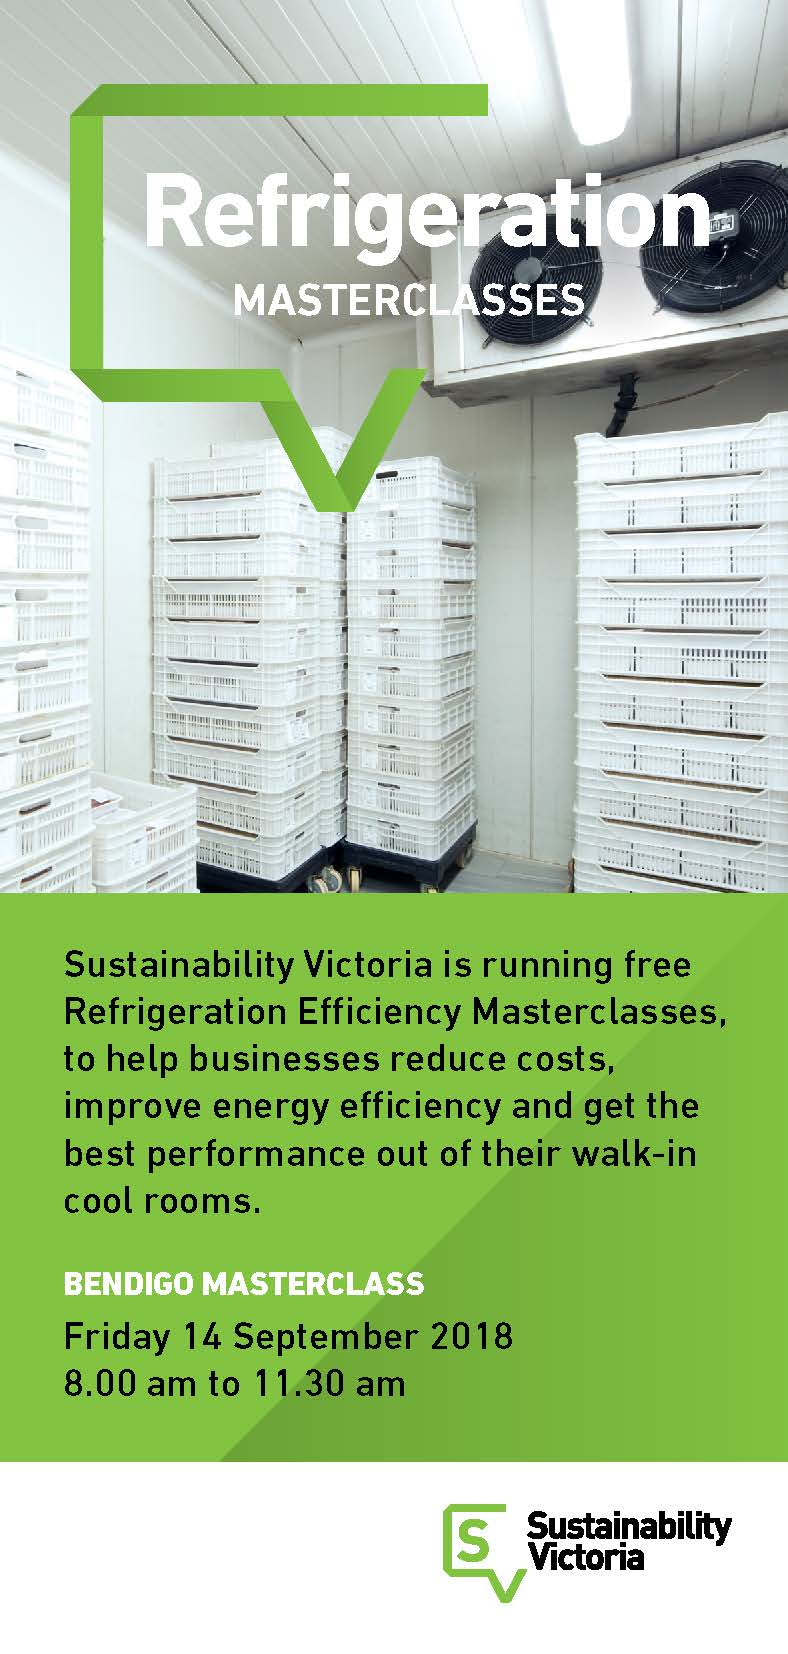 Refrigeration Efficiency Masterclasses ran across Victoria to local businesses.